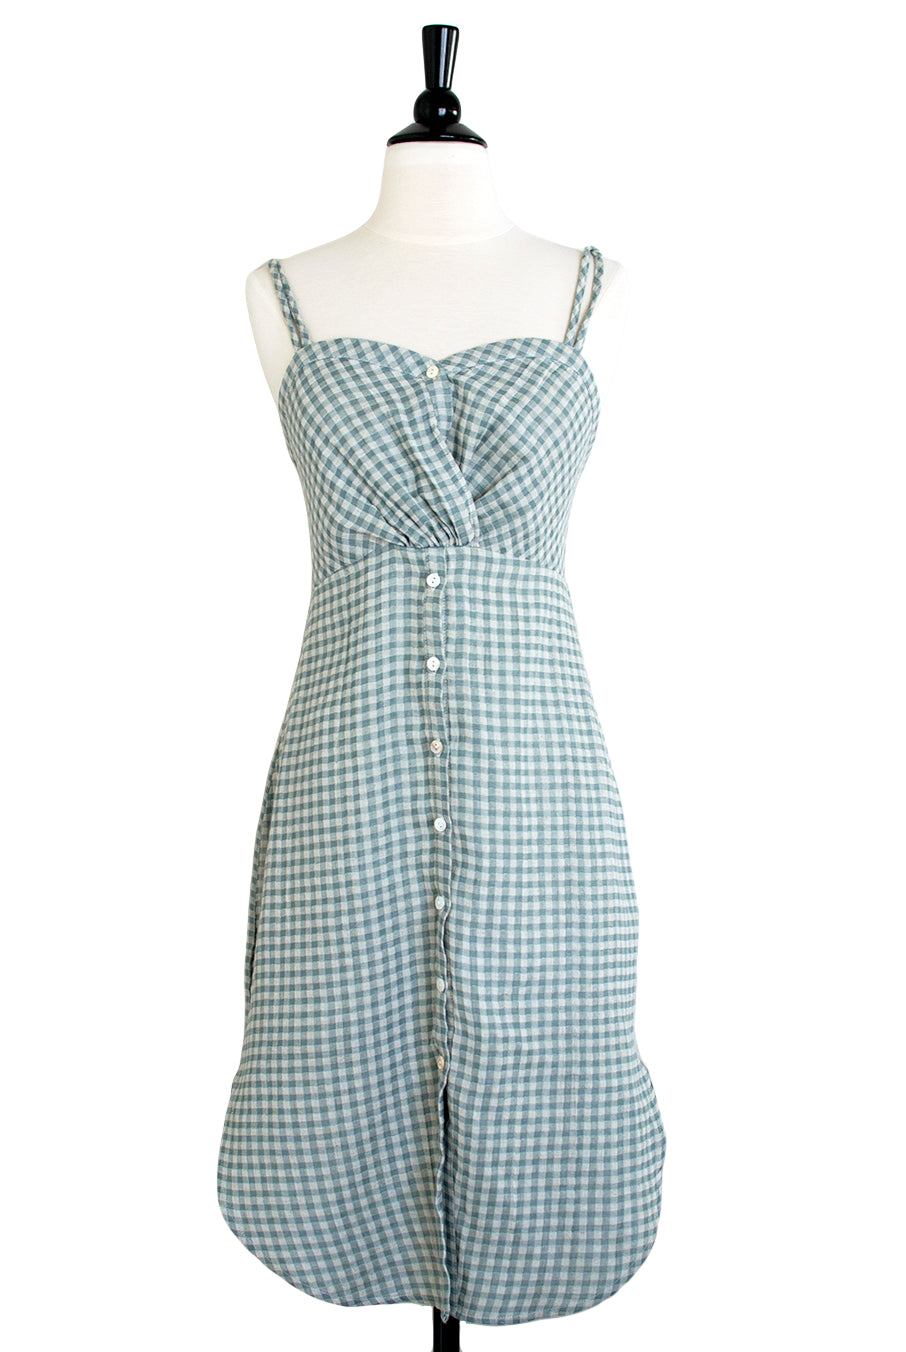 e14a421755c Sage Green Gingham Button Front Sundress - Hourglass Boutique ...